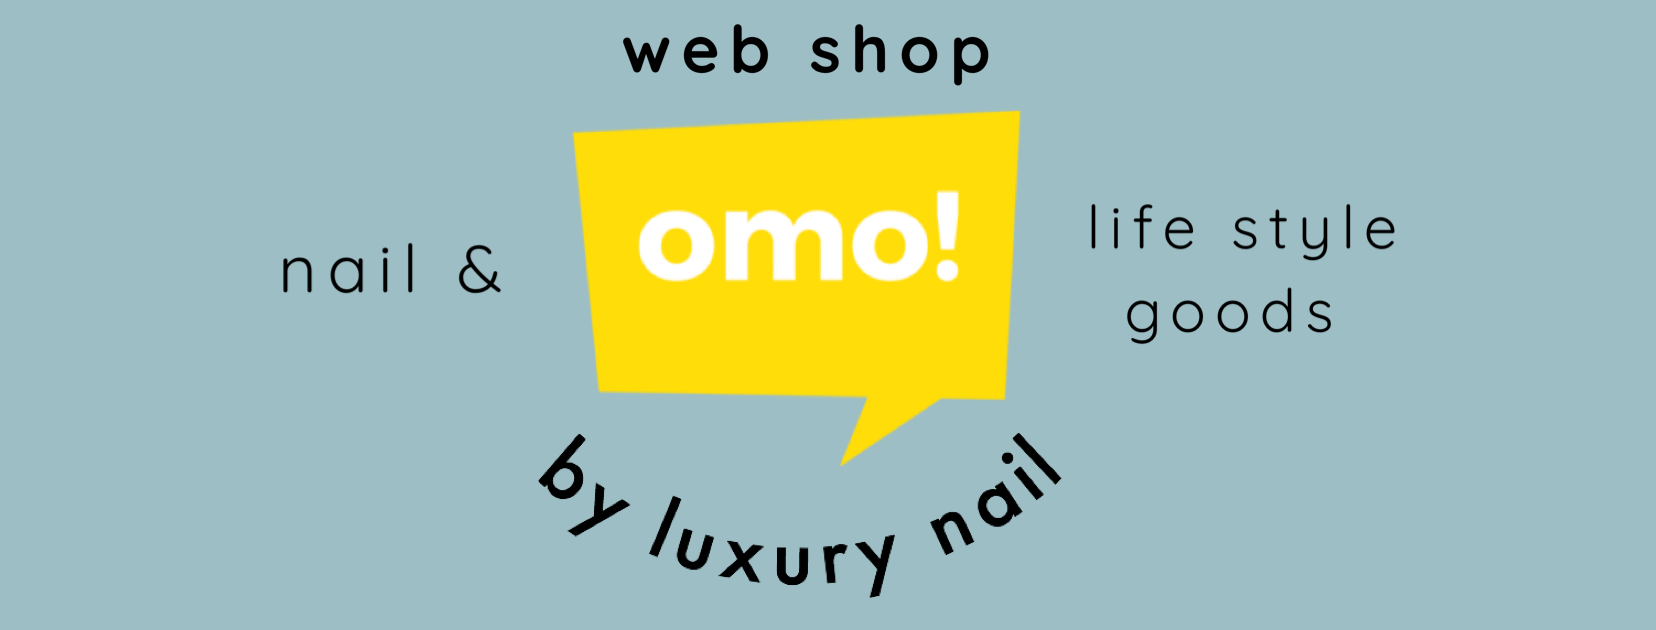 "Web shop ""omo!"" by luxury nail atelier"